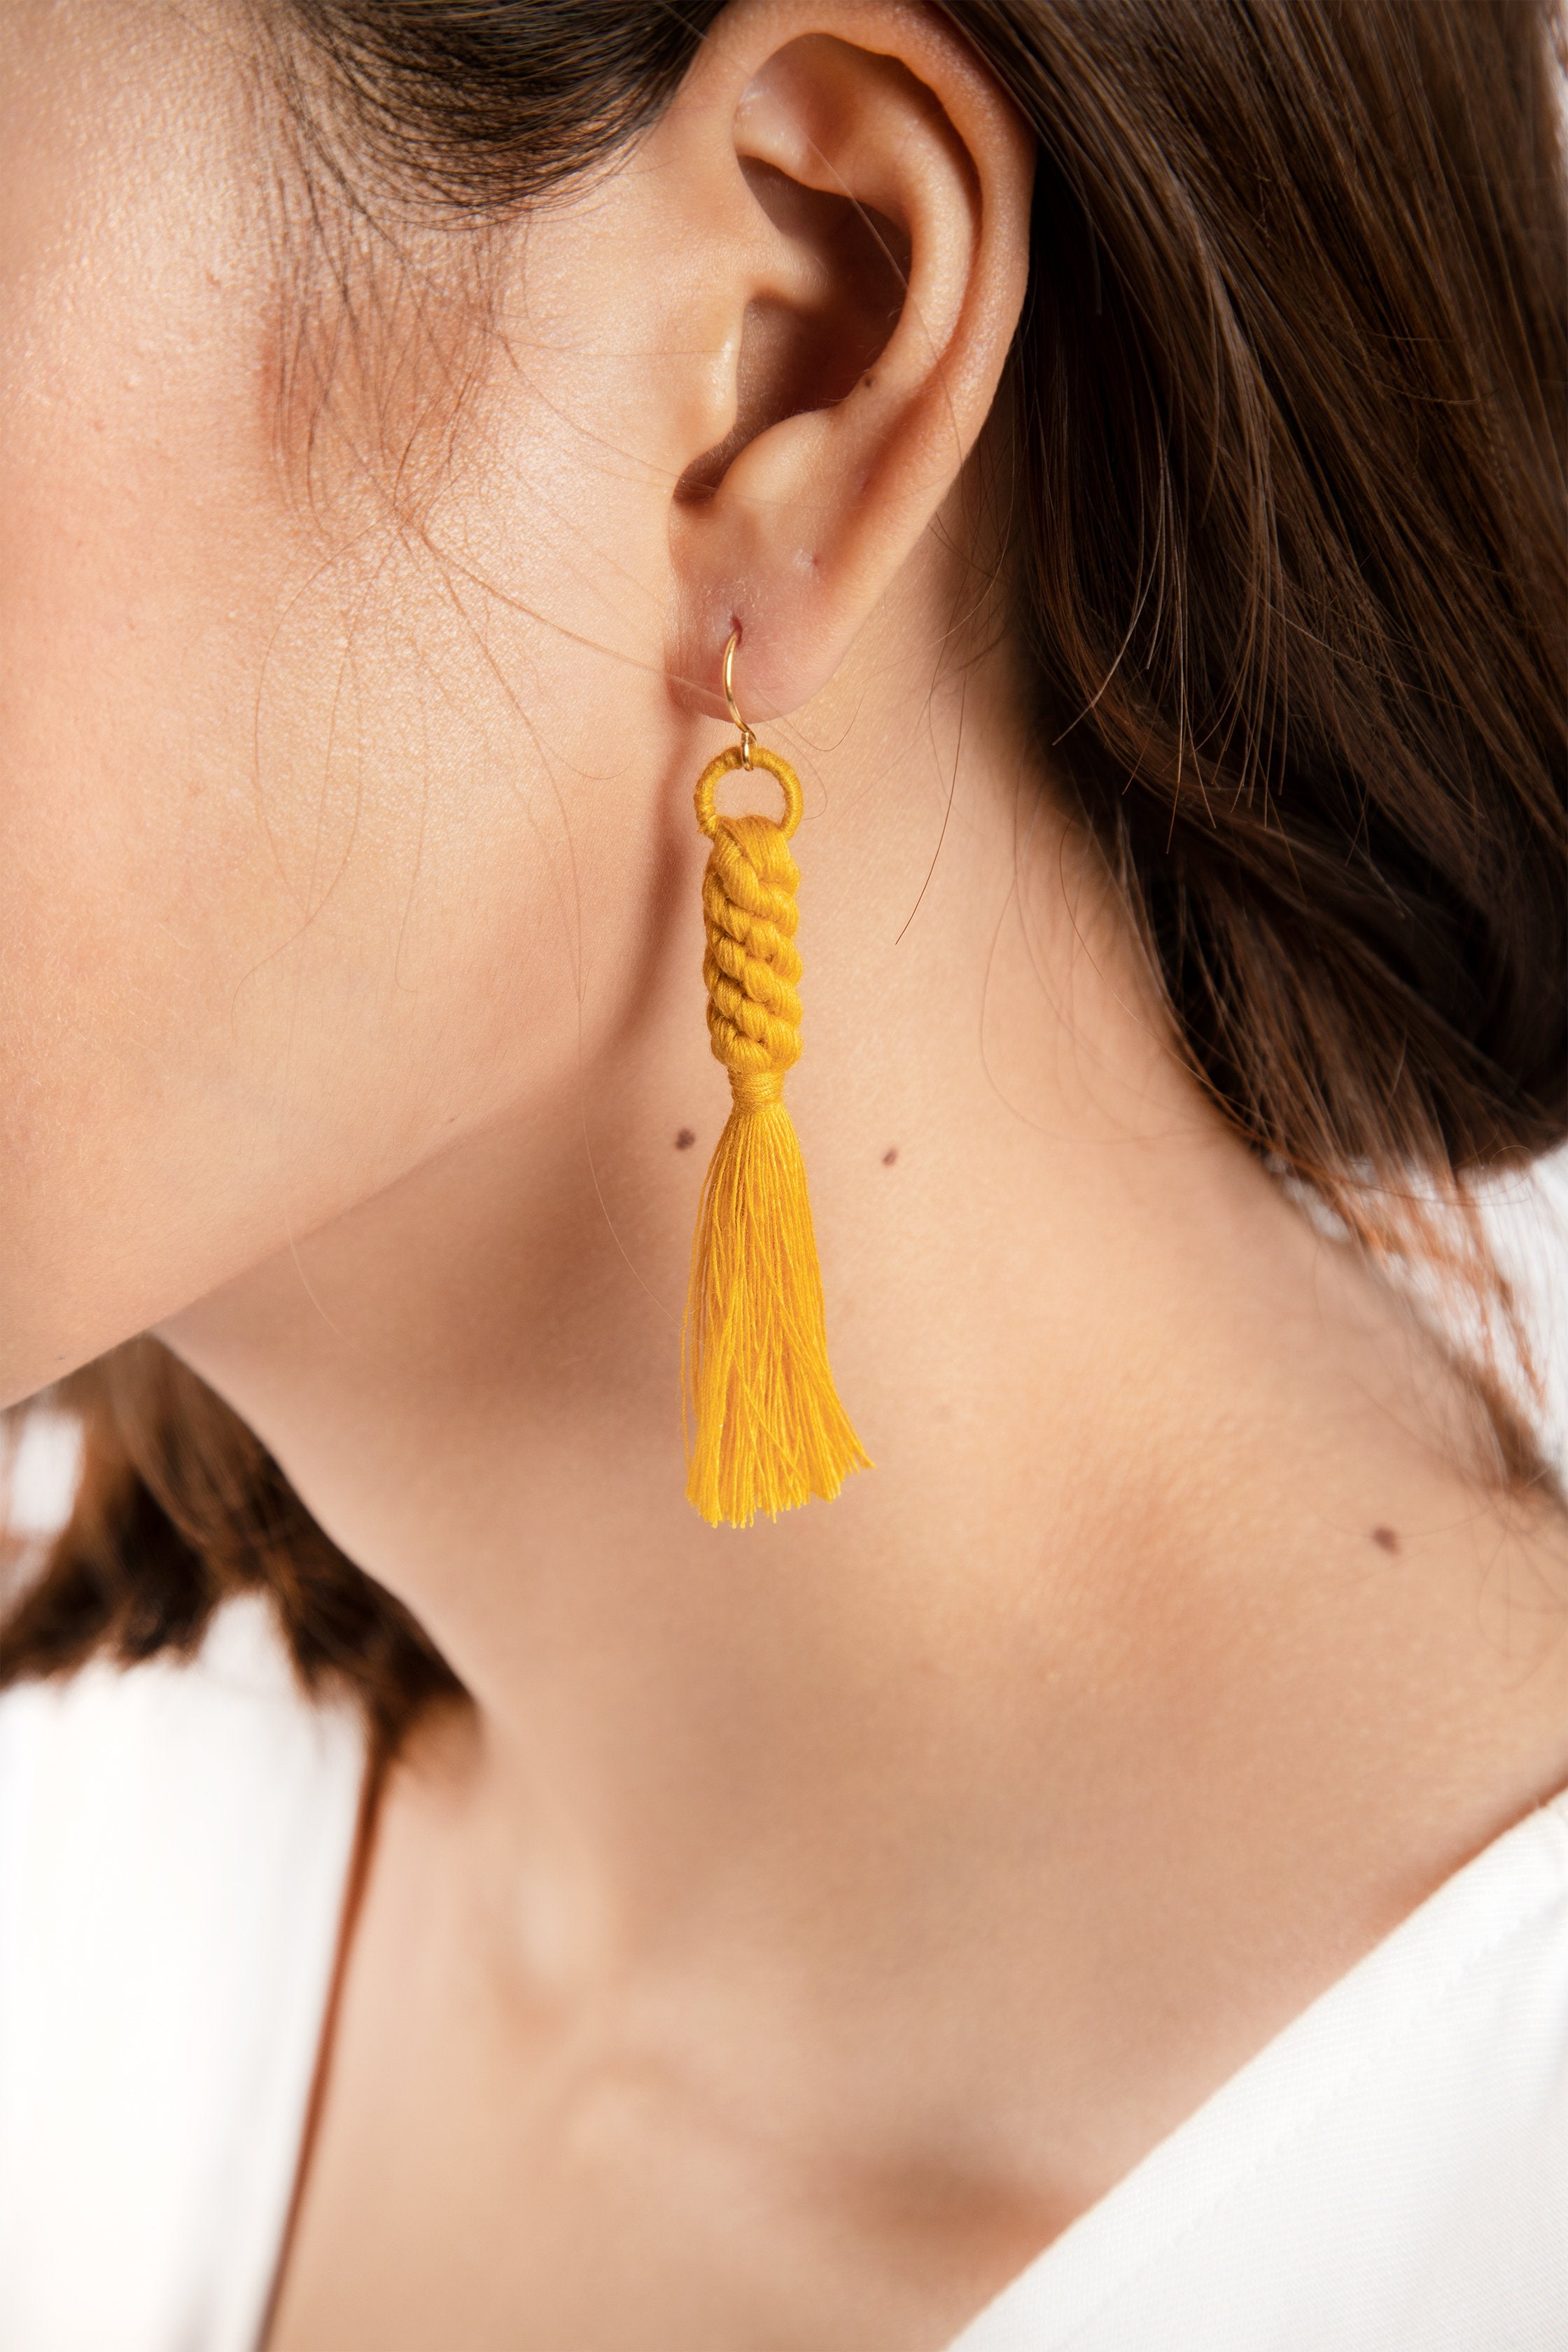 Shan Braid Earrings - Mustard - Our Barehands